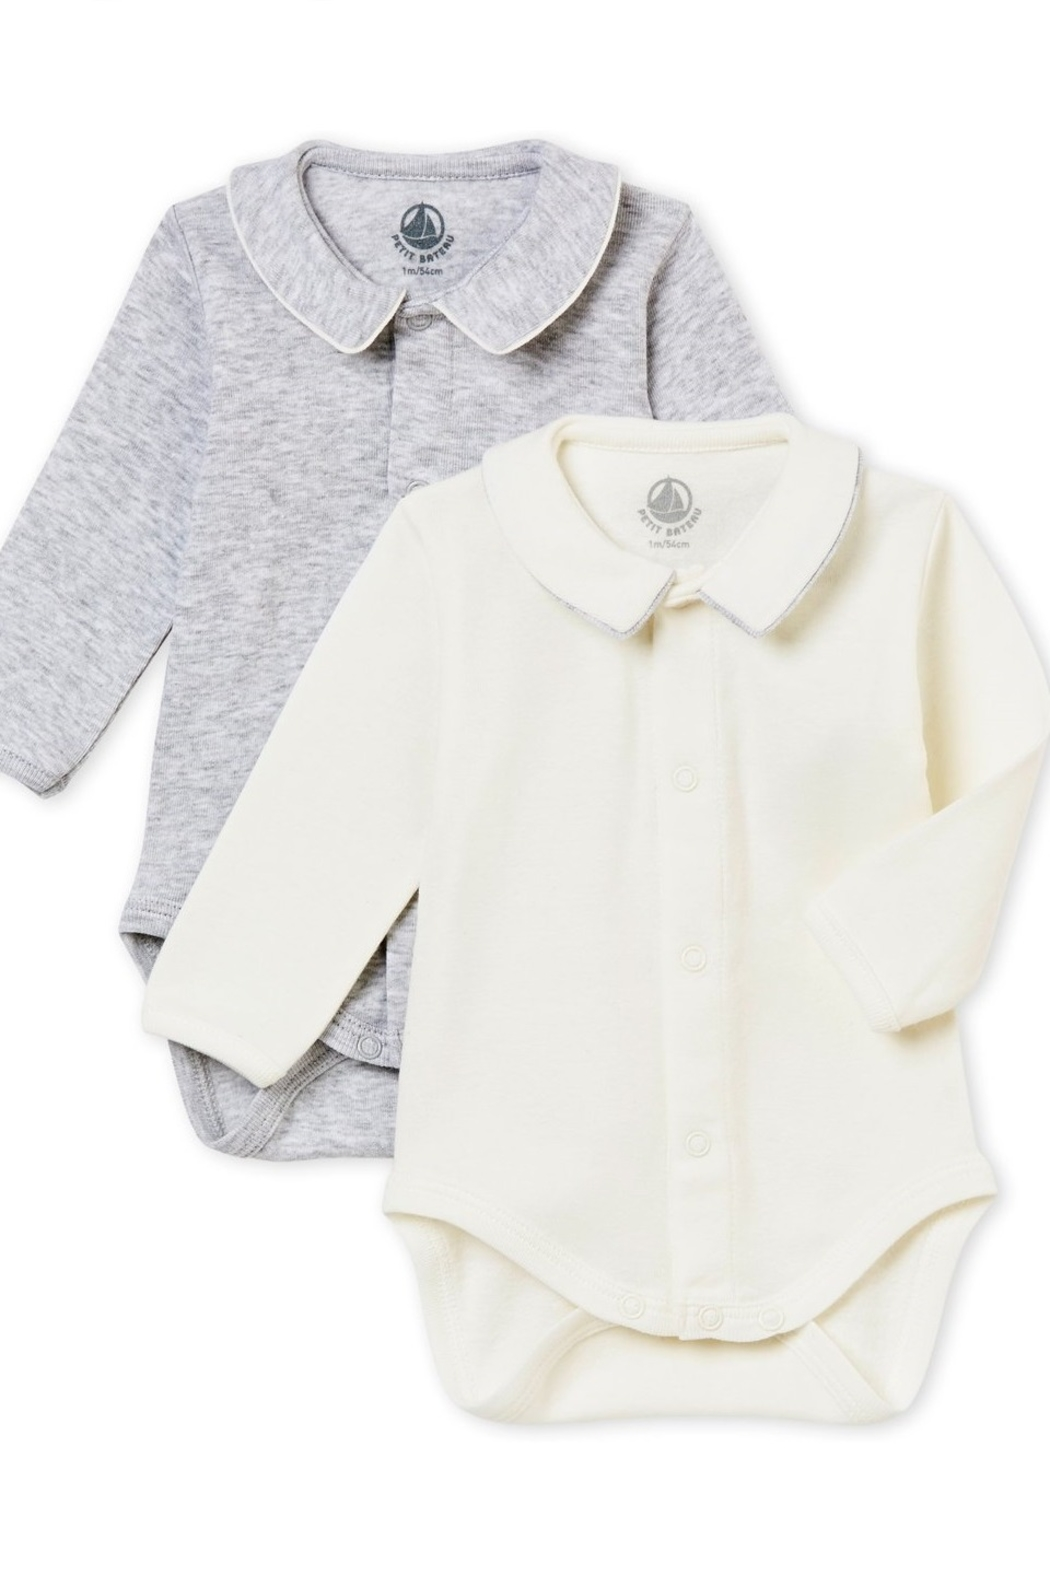 Petit Bateau Baby Boy Set of Long Sleeves Bodysuits with Collar - Main Image